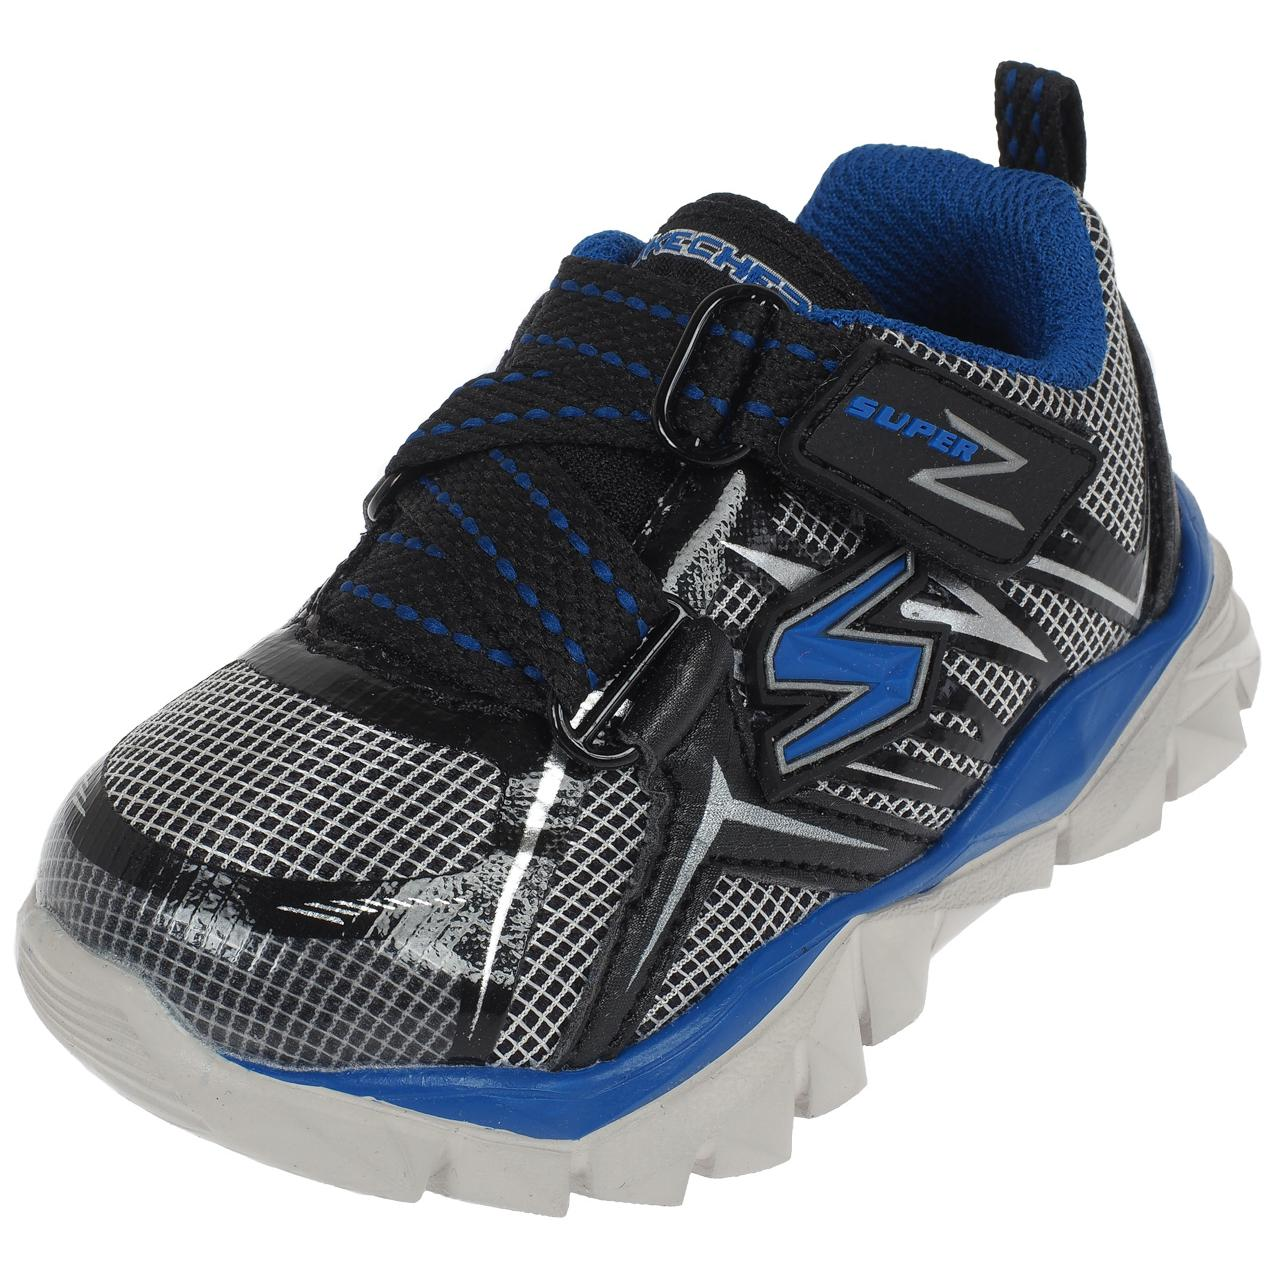 Chaussures-multisport-Skechers-Electronz-gr-roy-2016-Gris-75867-Neuf